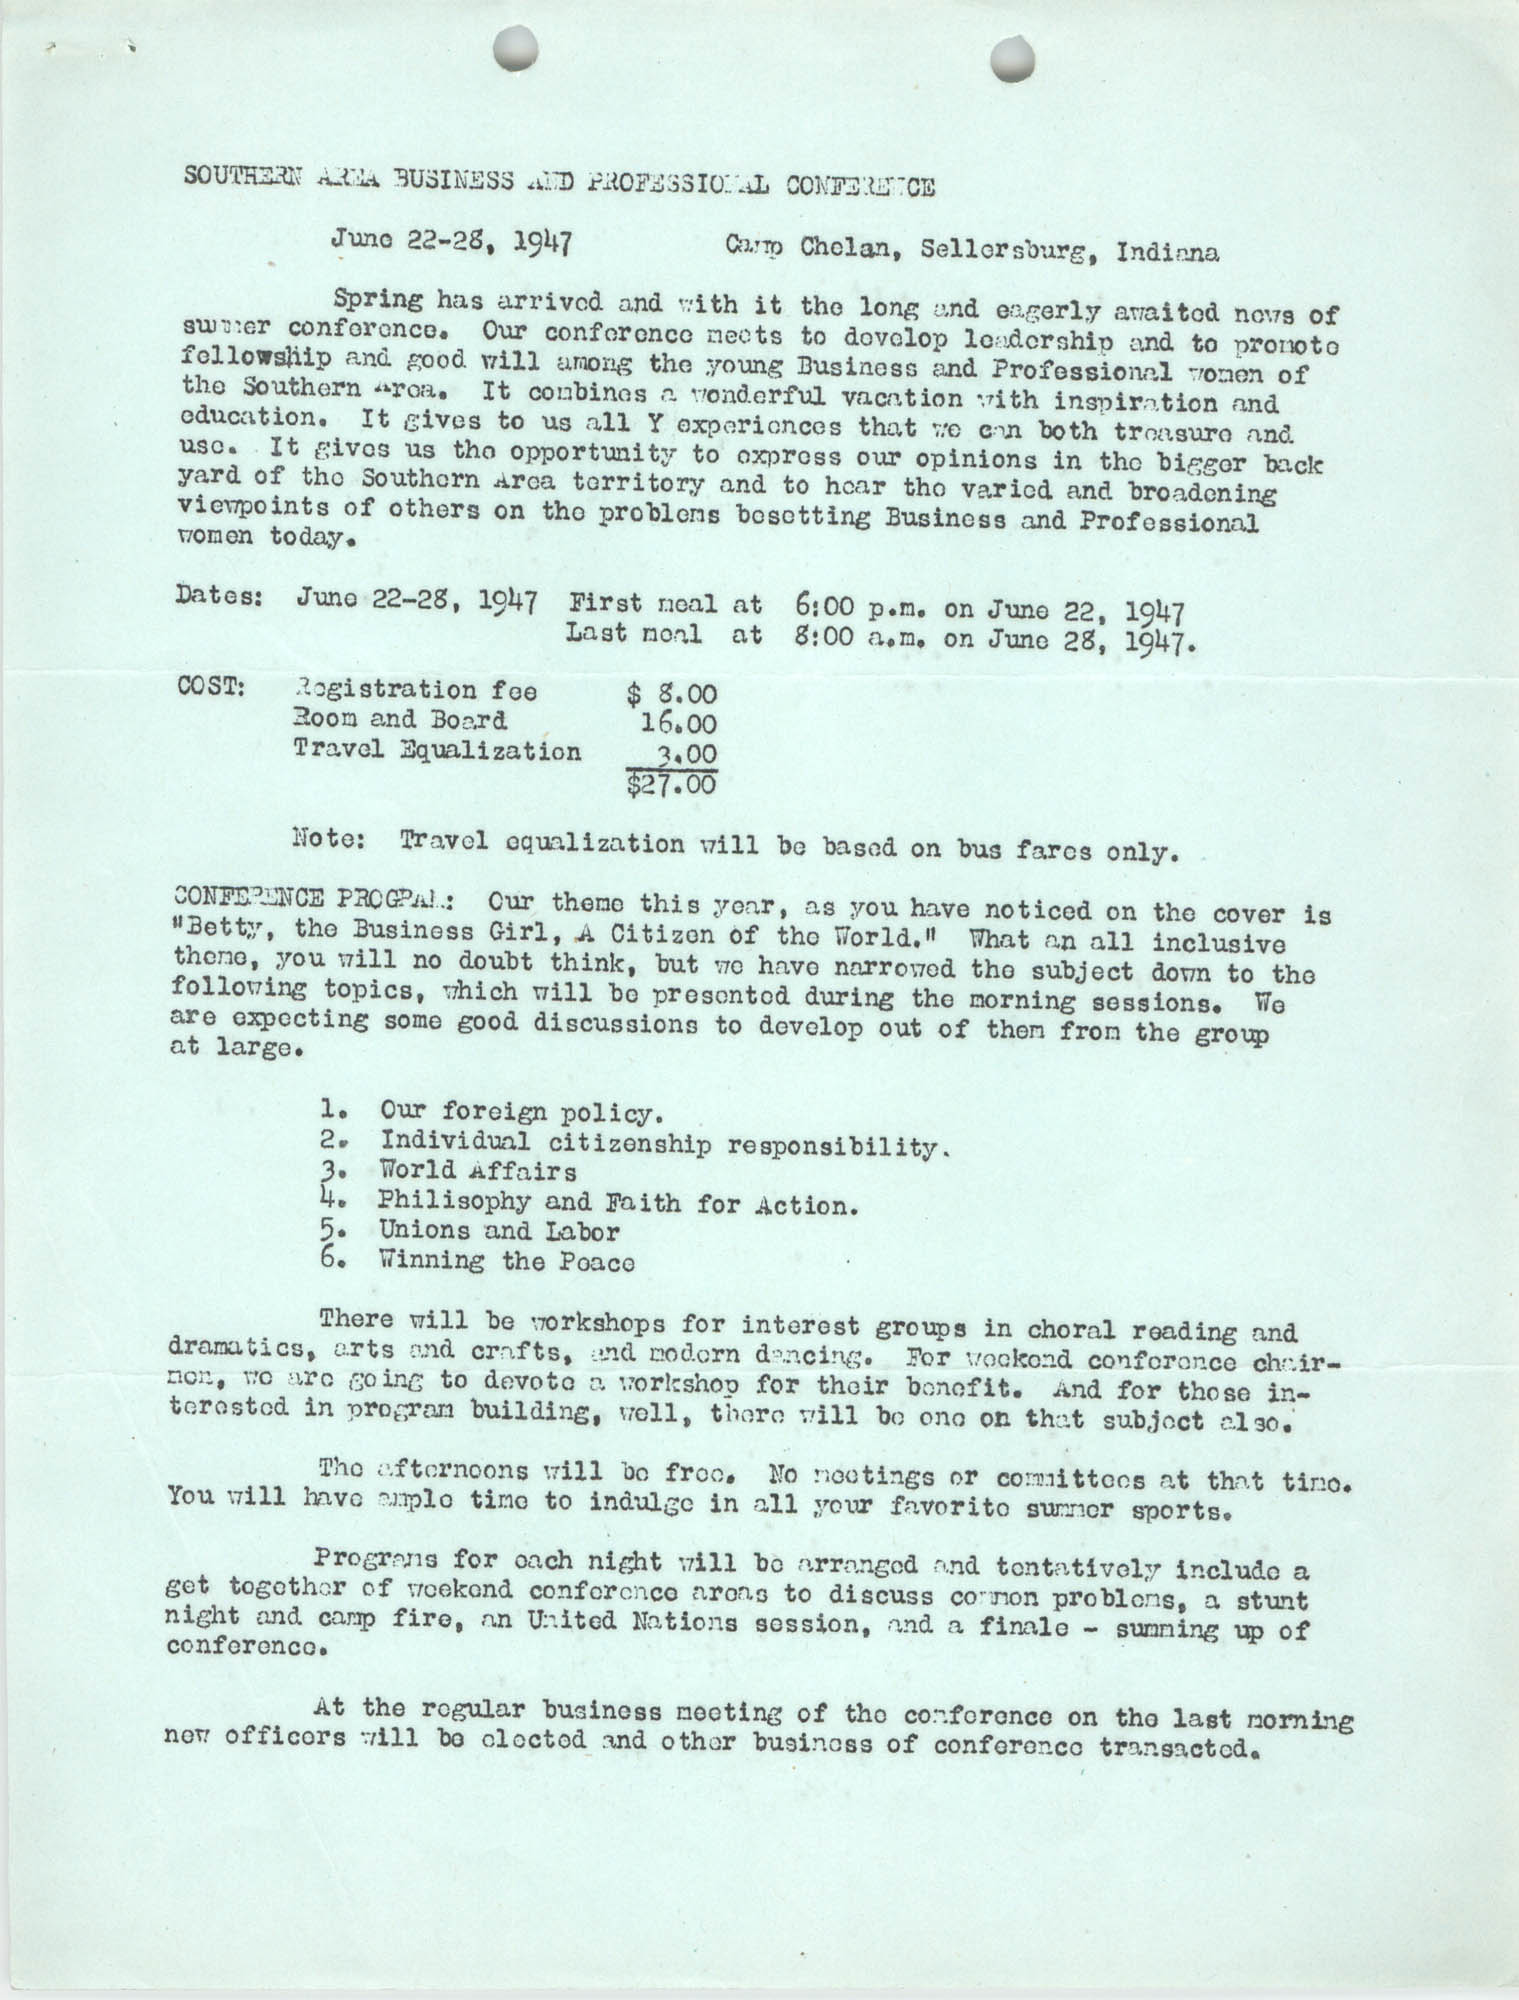 Southern Area Business and Professional Summer Conference, June 1947, Page 2